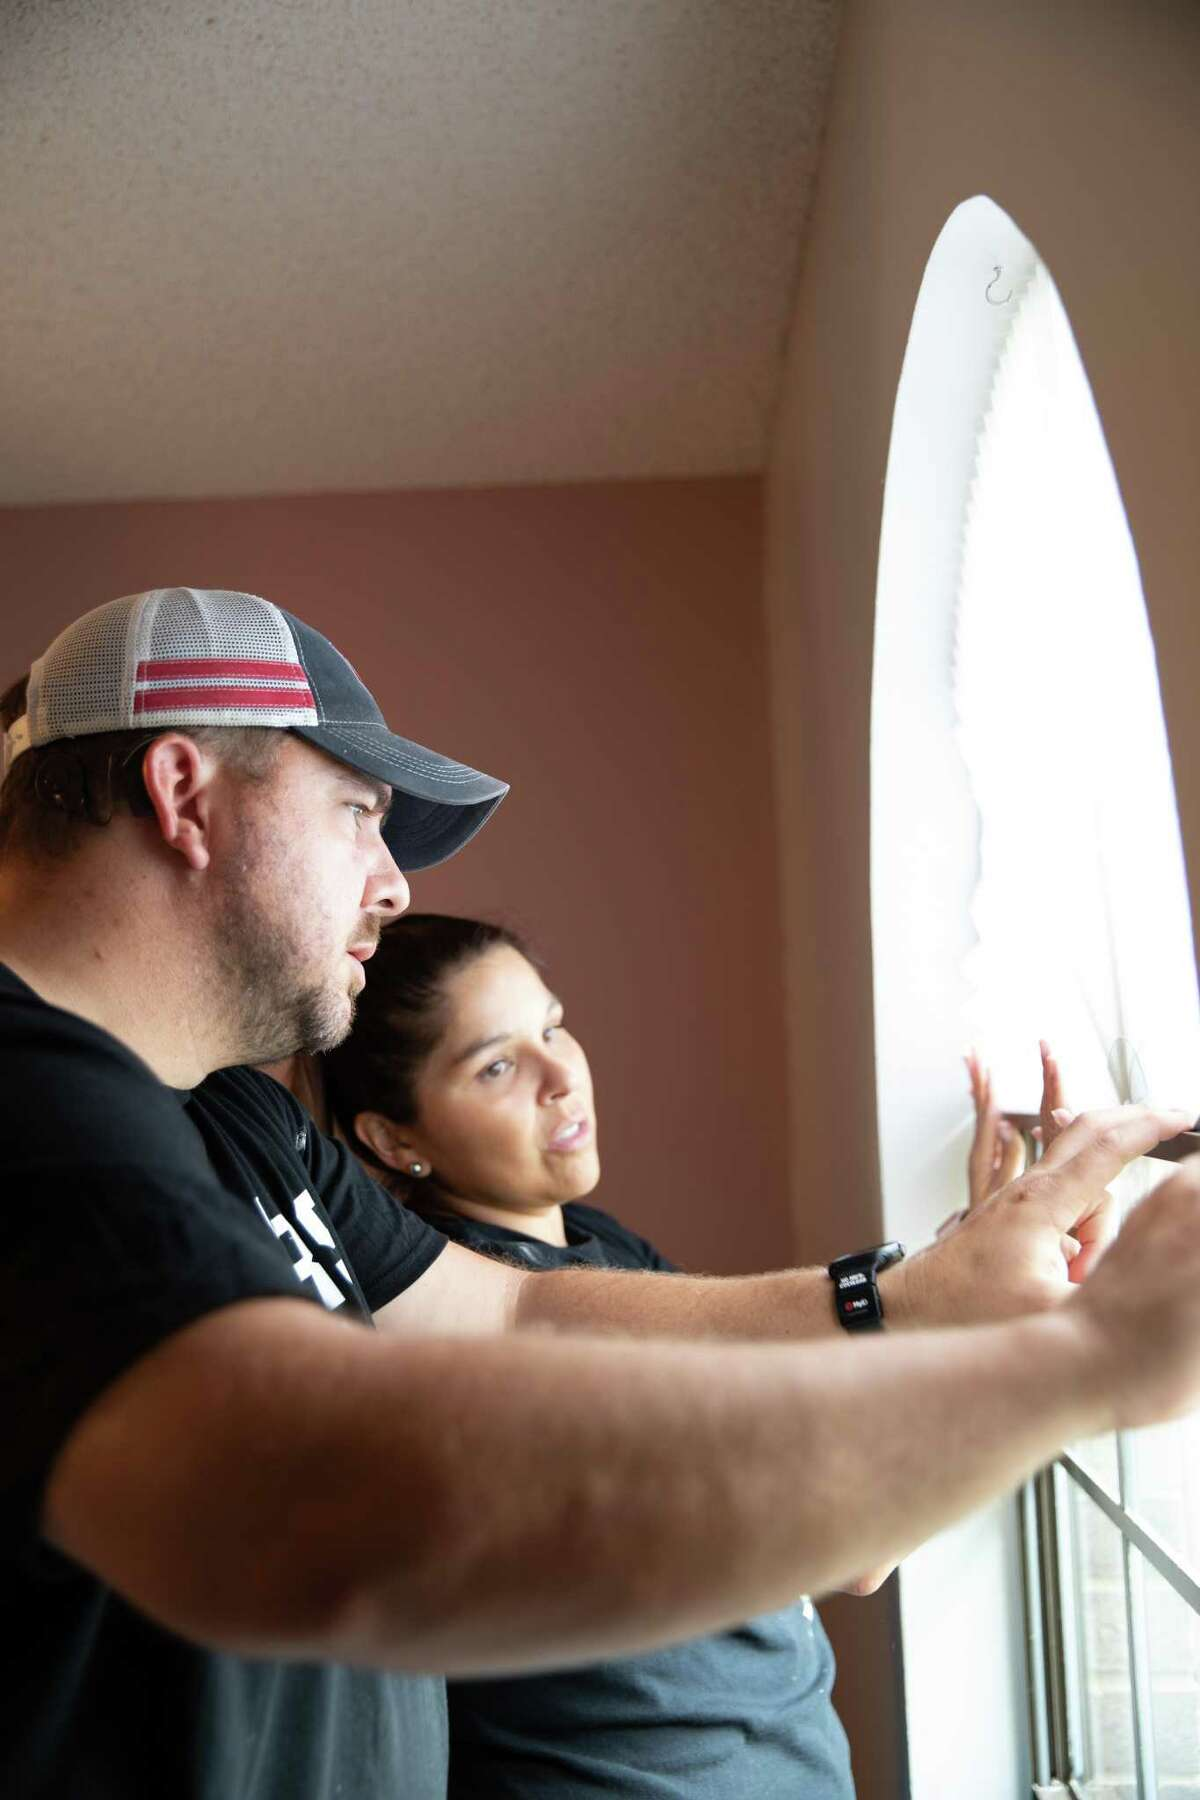 Amanda Fite, Spurs Give youth sports manager, and husband Cory Fite adjust a window as they help renovate a child's room with nonprofit Room Redux.